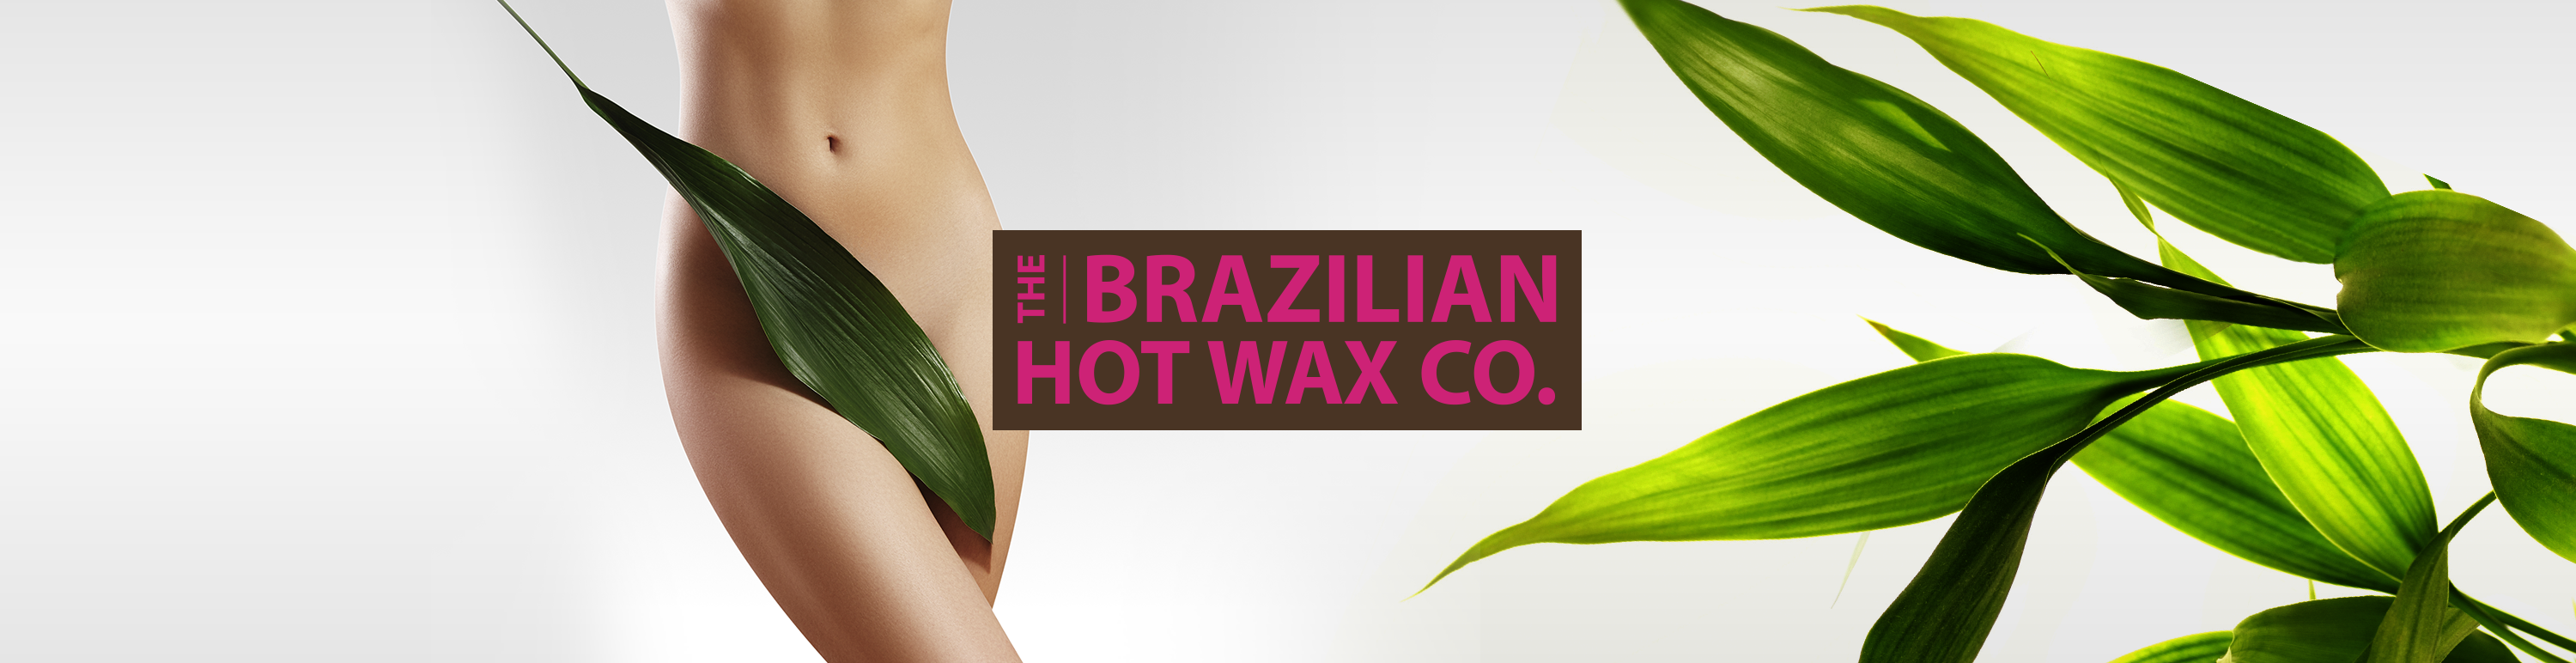 The-Brazilian-Hot-Wax-Co-Main-Banner-New-v2